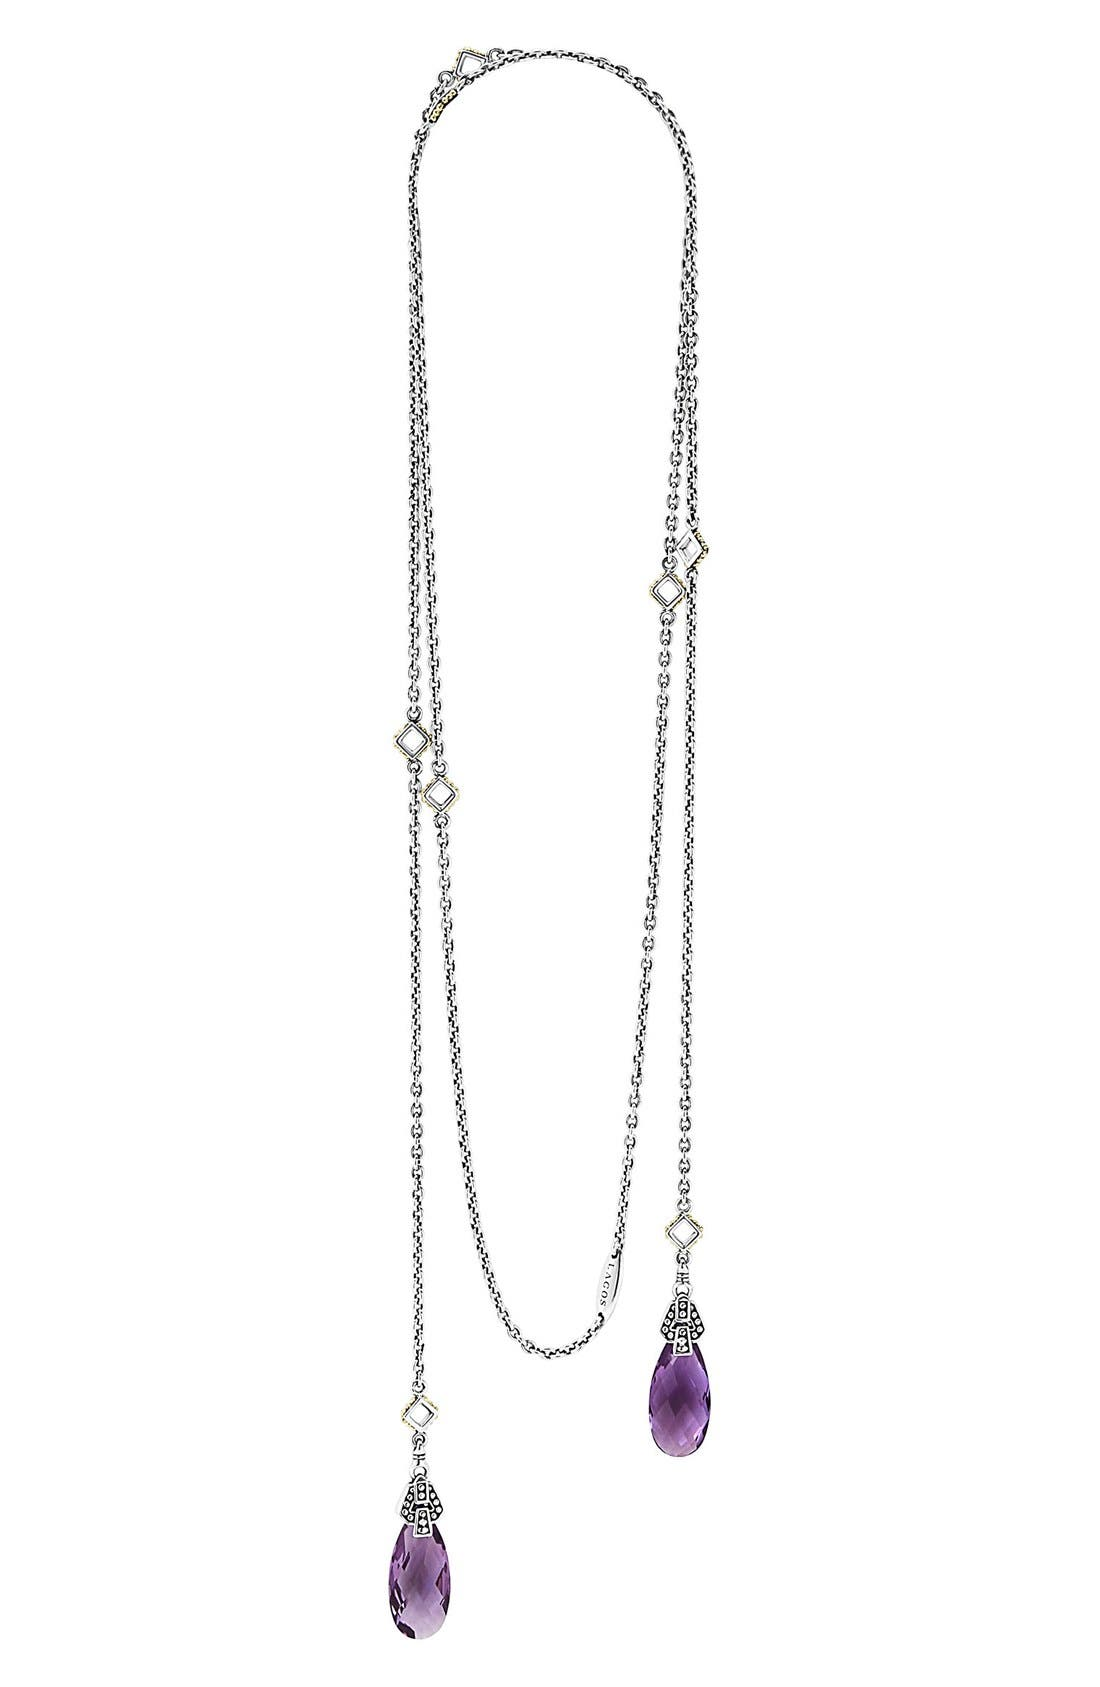 LAGOS 'Caviar Color' Semiprecious Stone Lariat Necklace